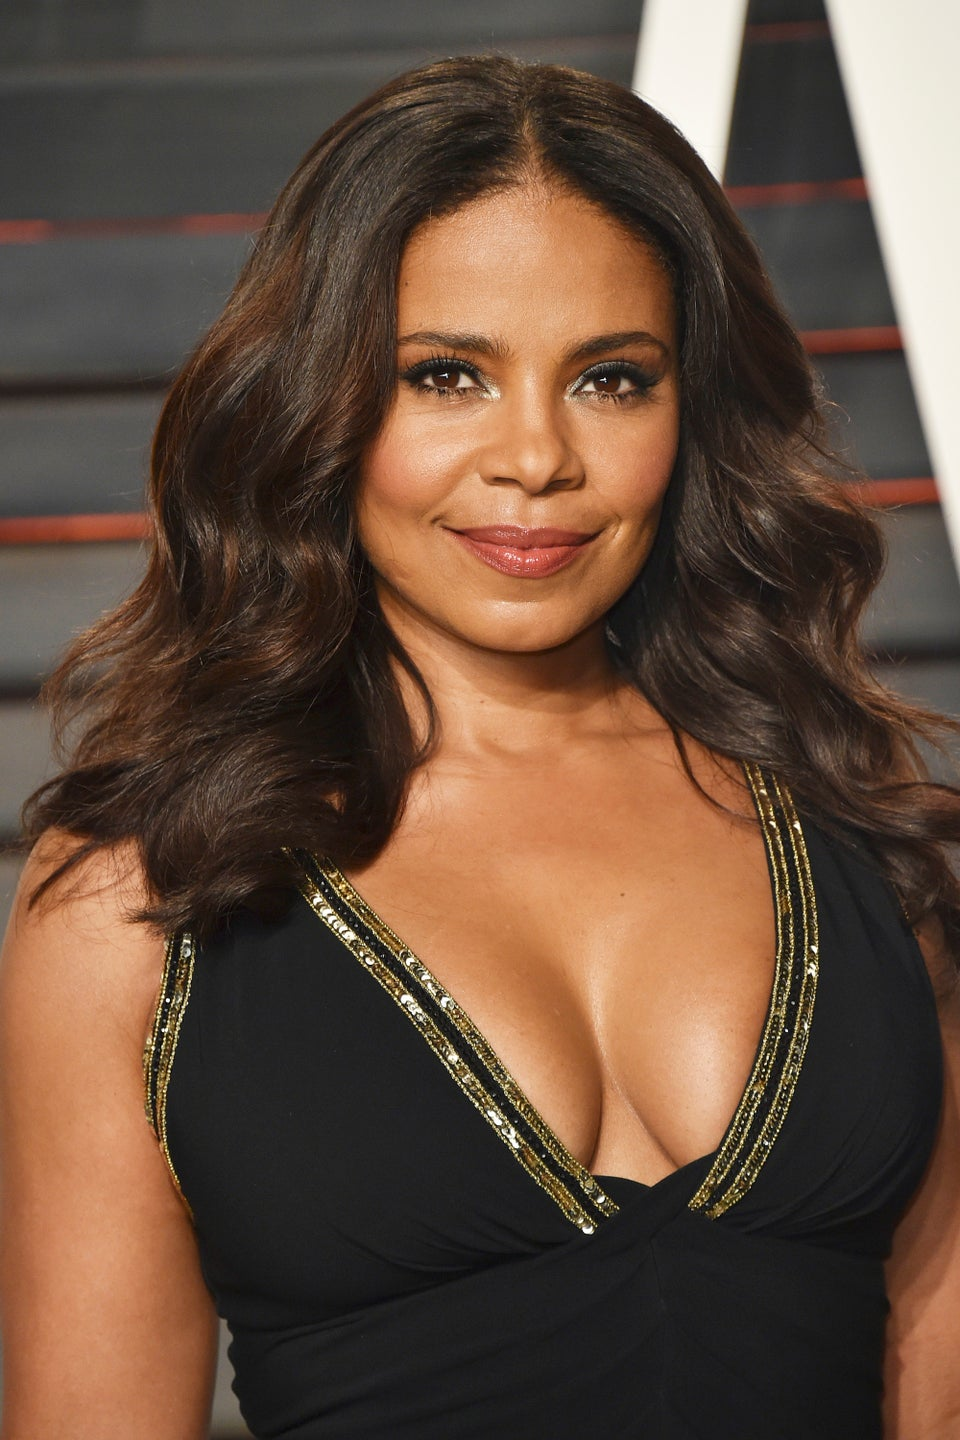 Sanaa Lathan Is A Babe In Braids, Obvs